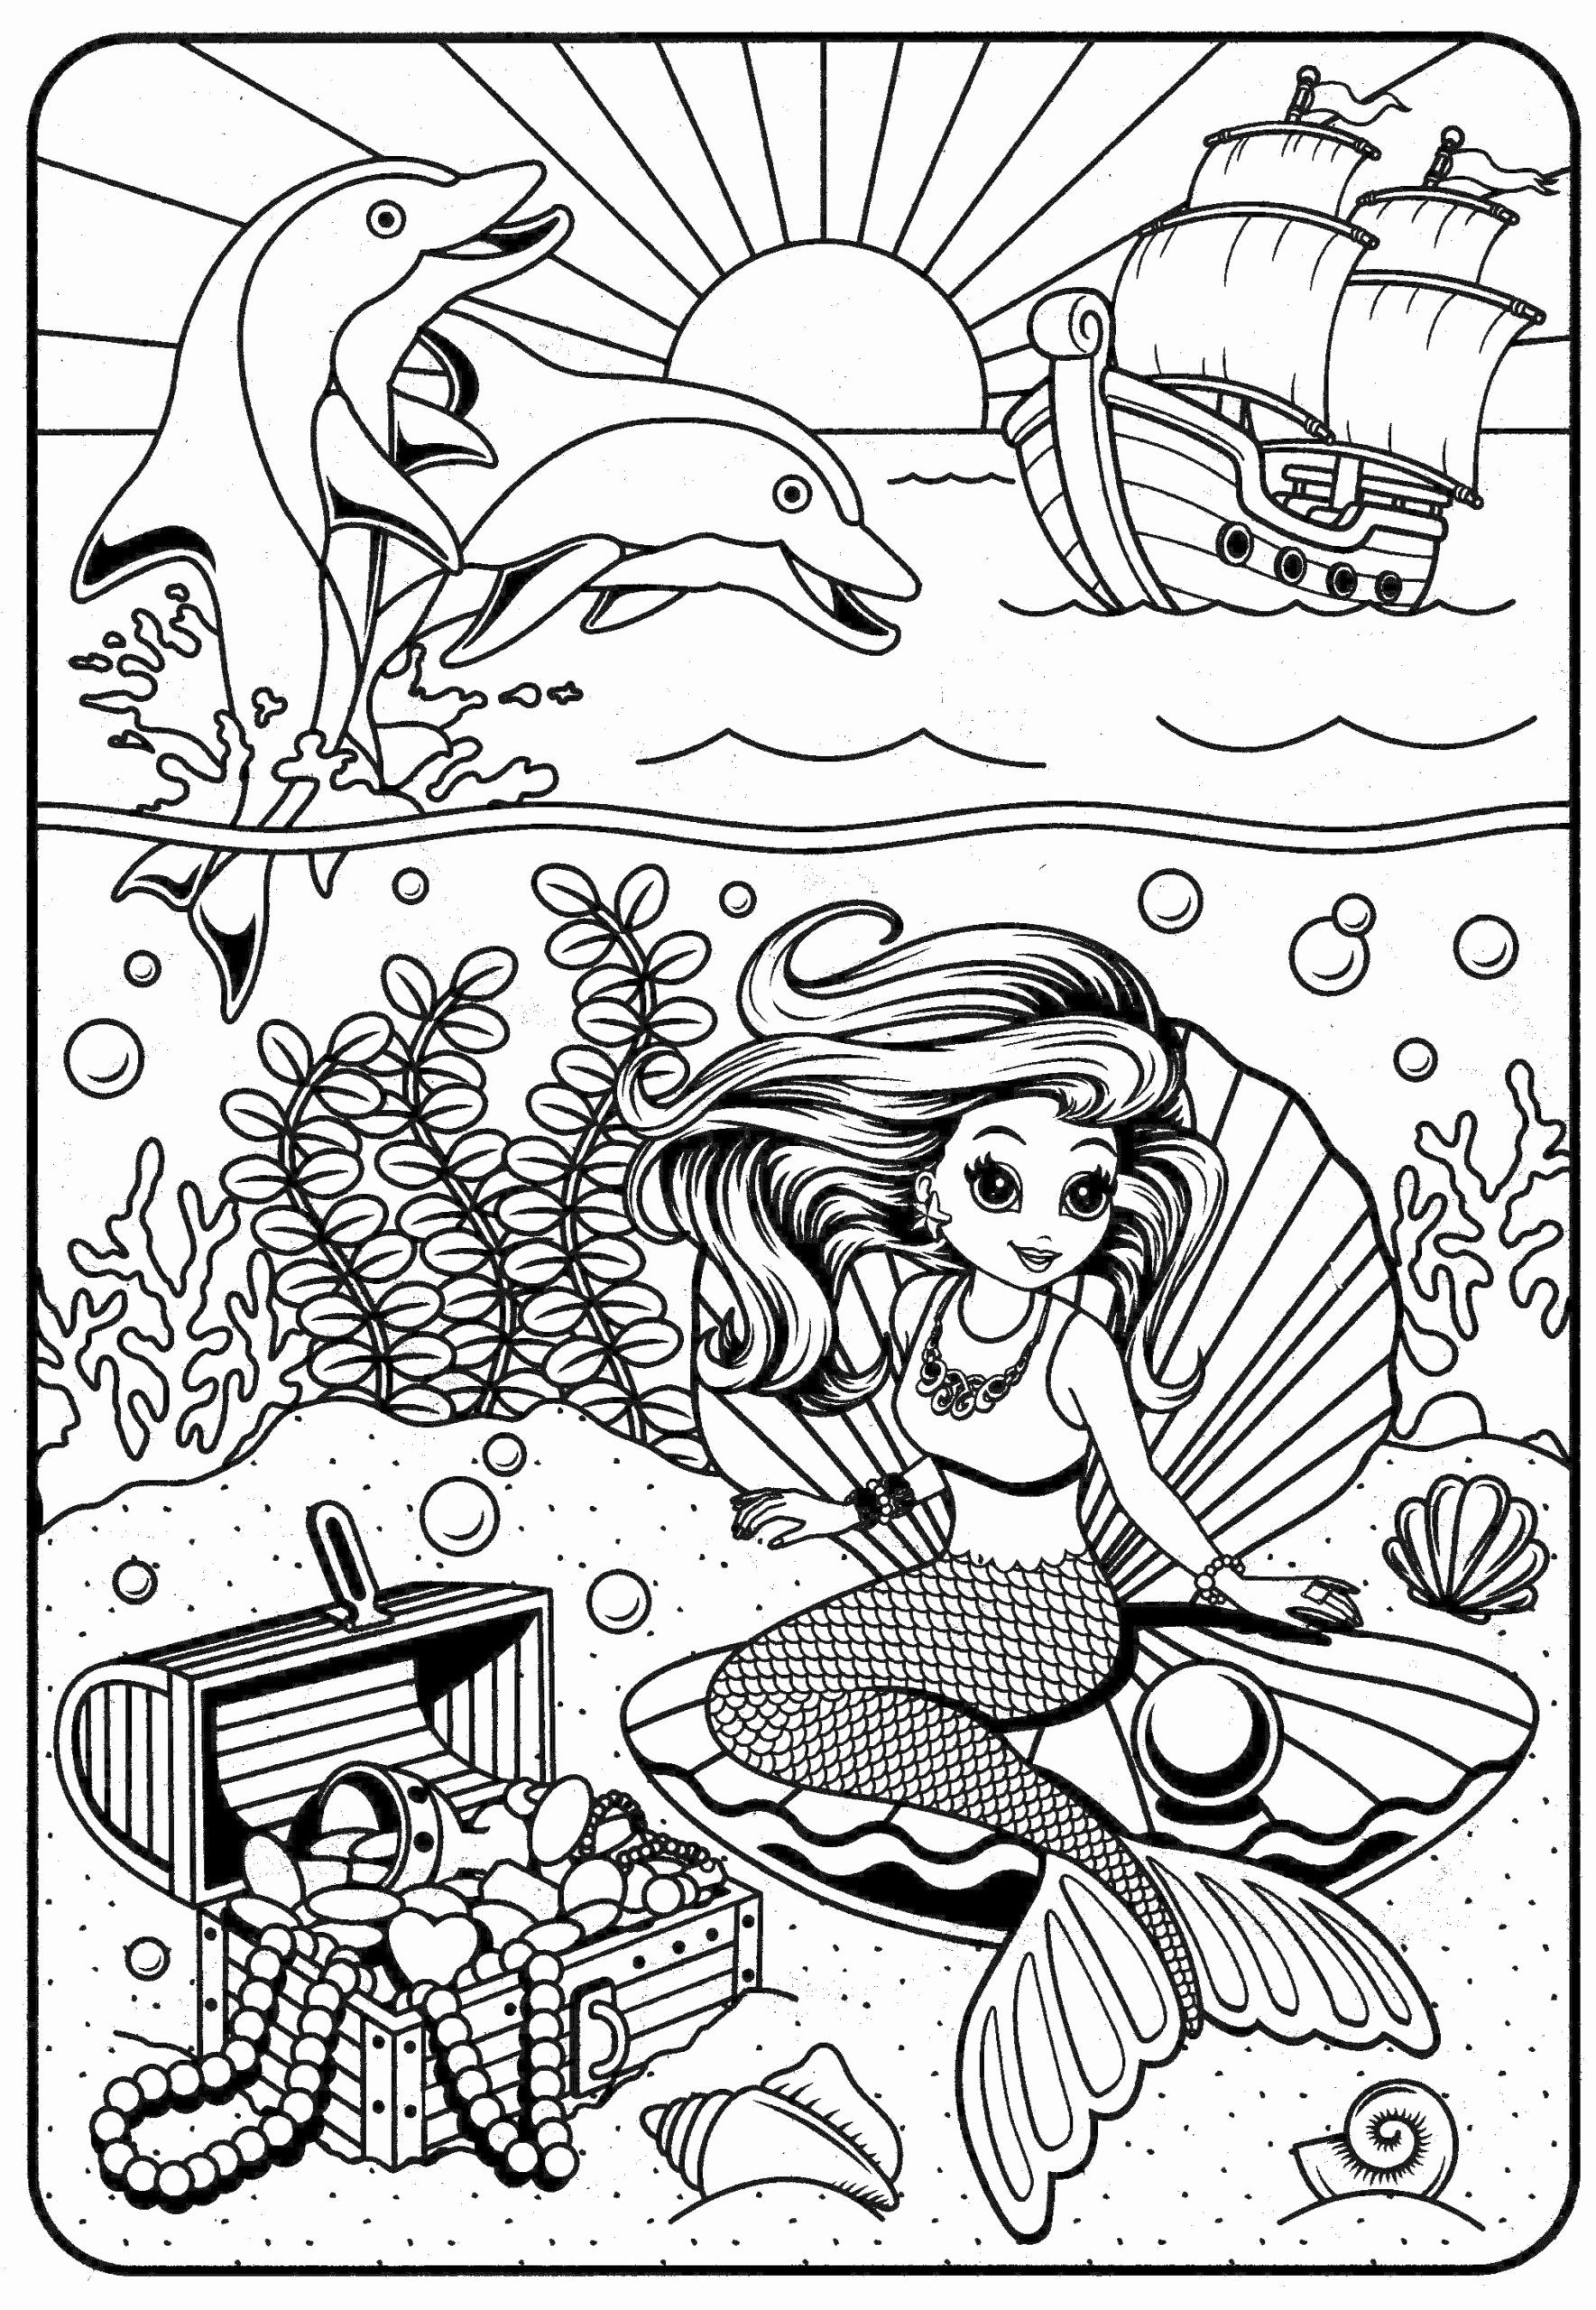 Pin By Rabia Unal On Ariel Petite Sirene Mermaid Coloring Pages Space Coloring Pages Lisa Frank Coloring Books [ 2560 x 1769 Pixel ]